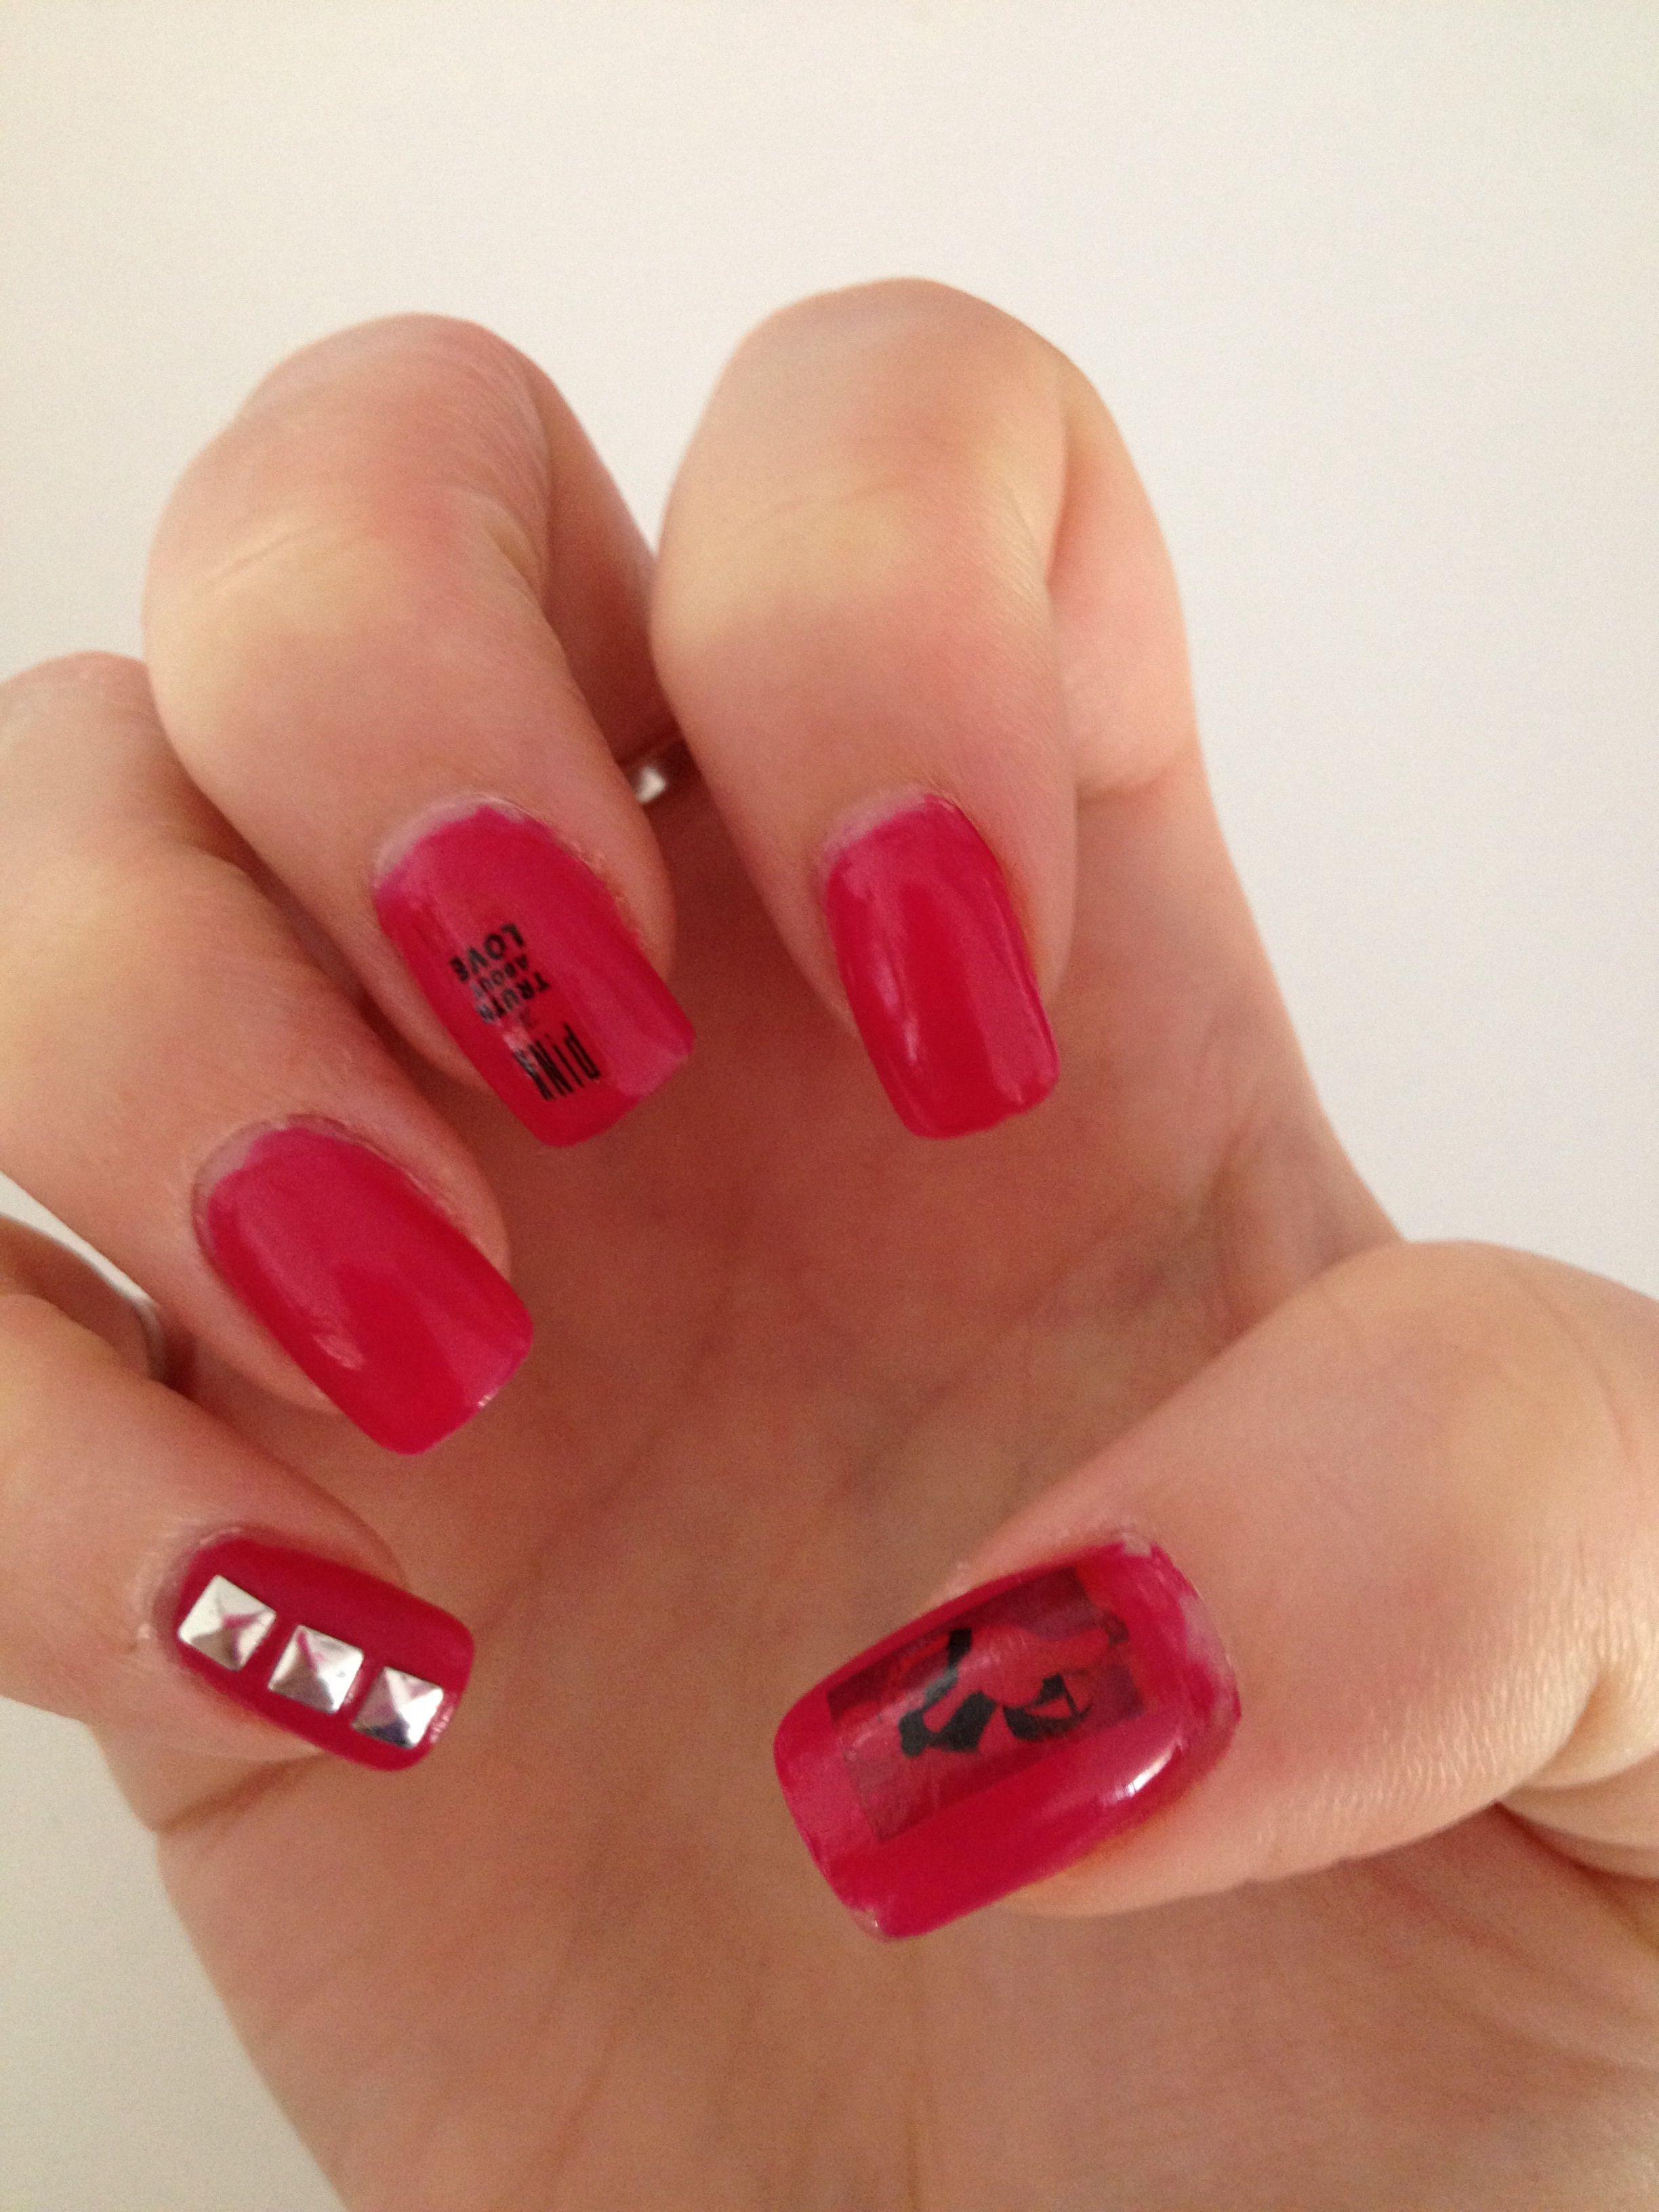 P!nk nails for her concert | Nails | Pinterest